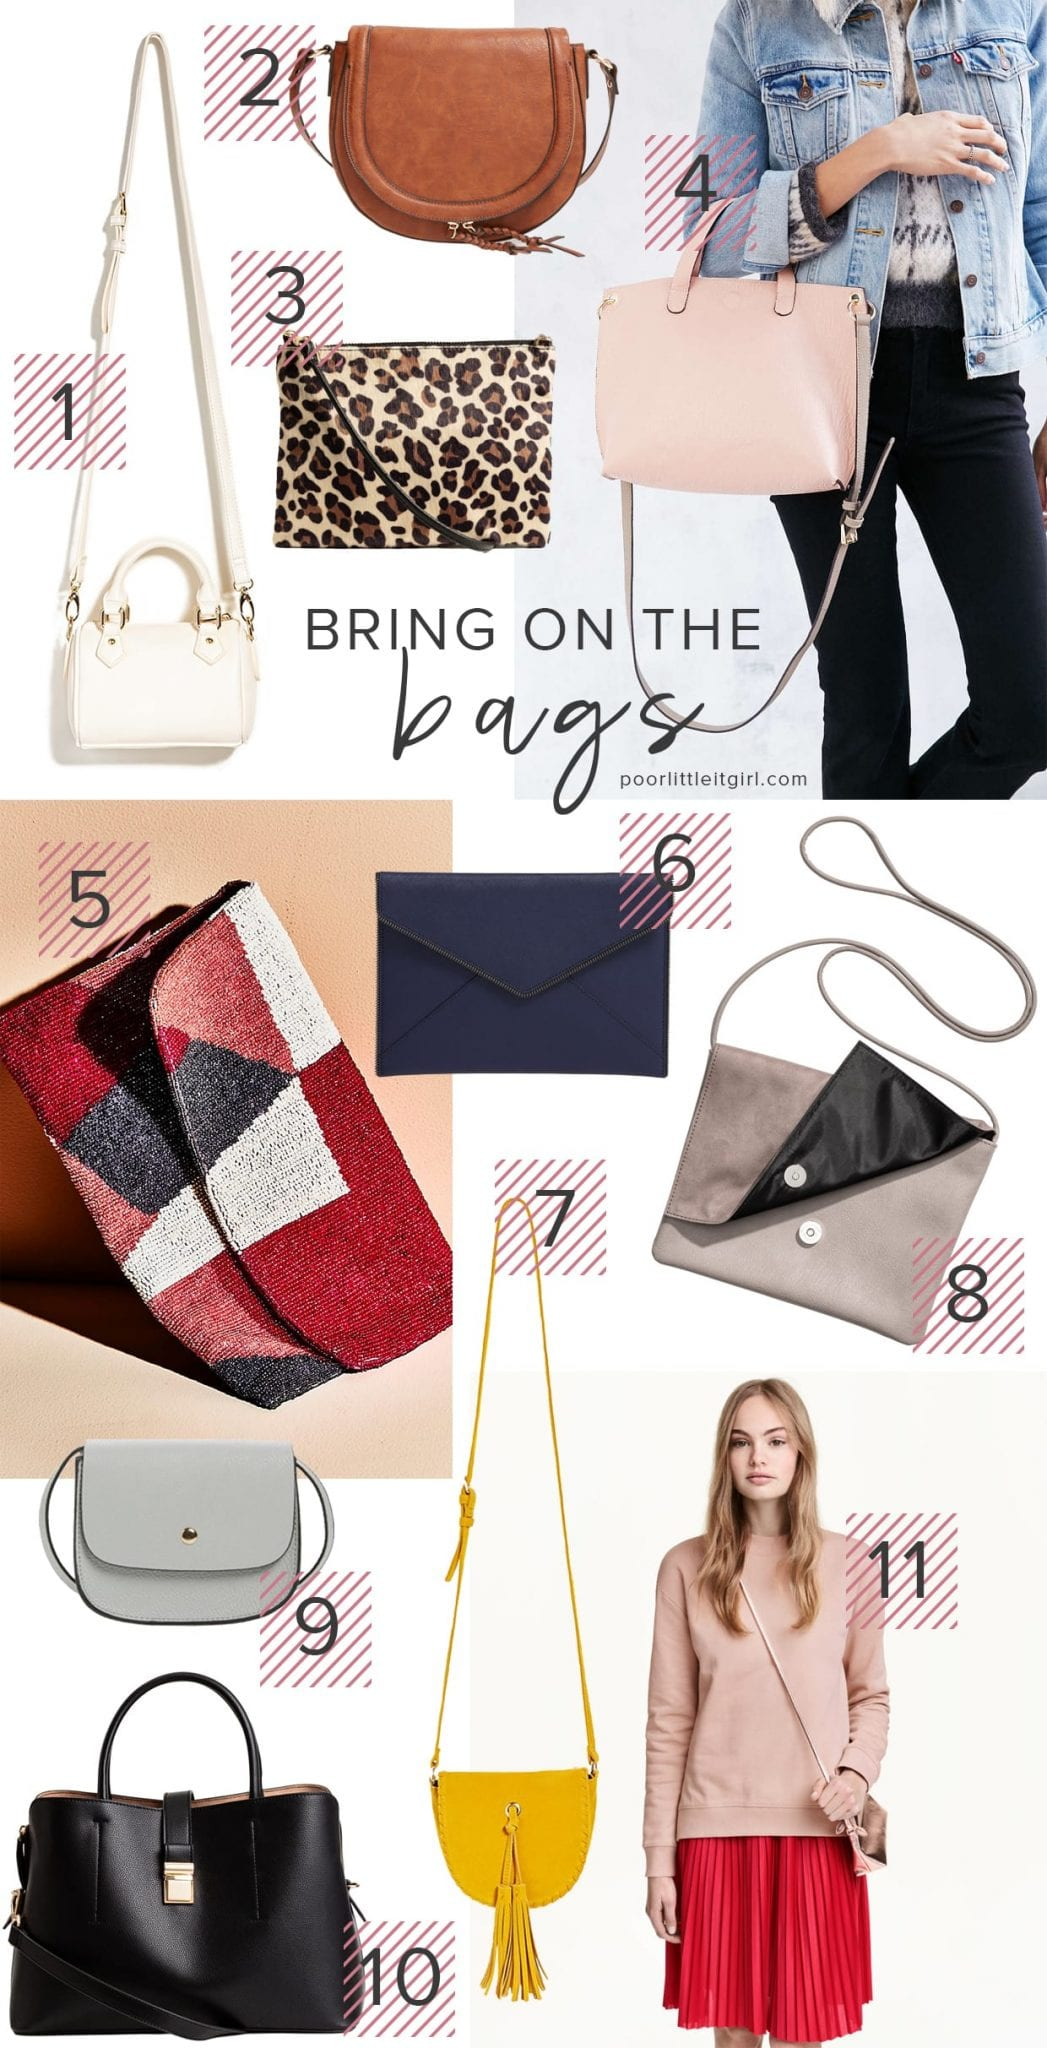 Bring On The Bags - Under $100 - Poor Little It Girl